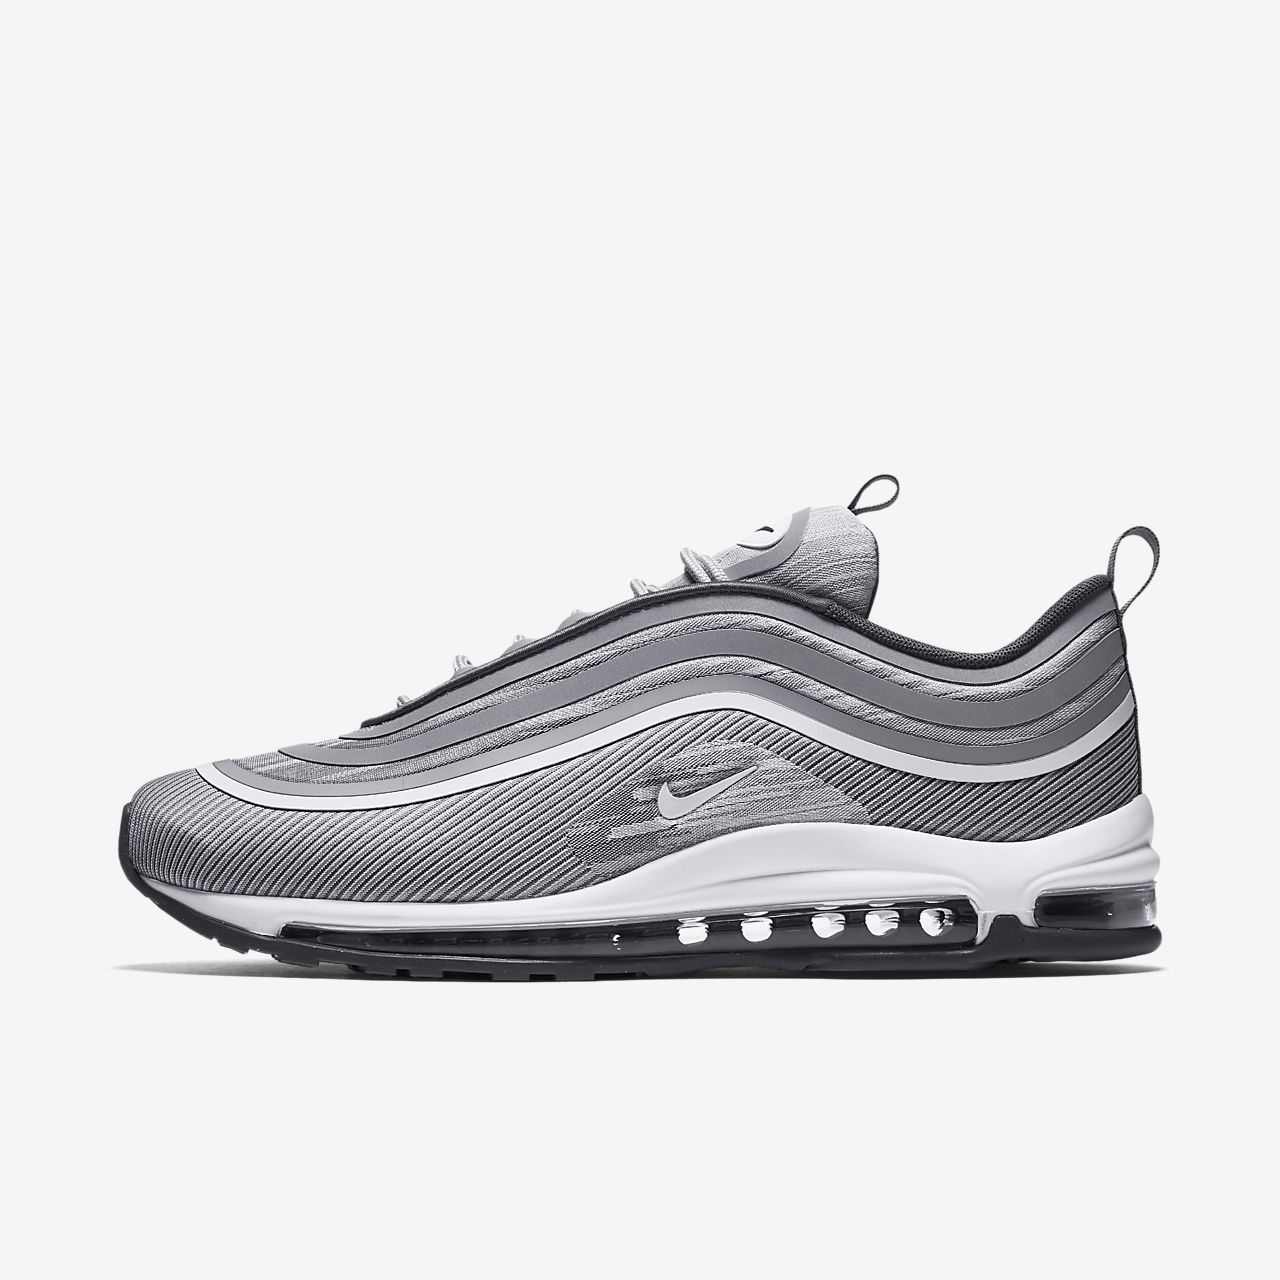 competitive price e6d7e 813b2 ... shop nike air max 97 ultra 17 sko til mænd 9495a 05d1f ...